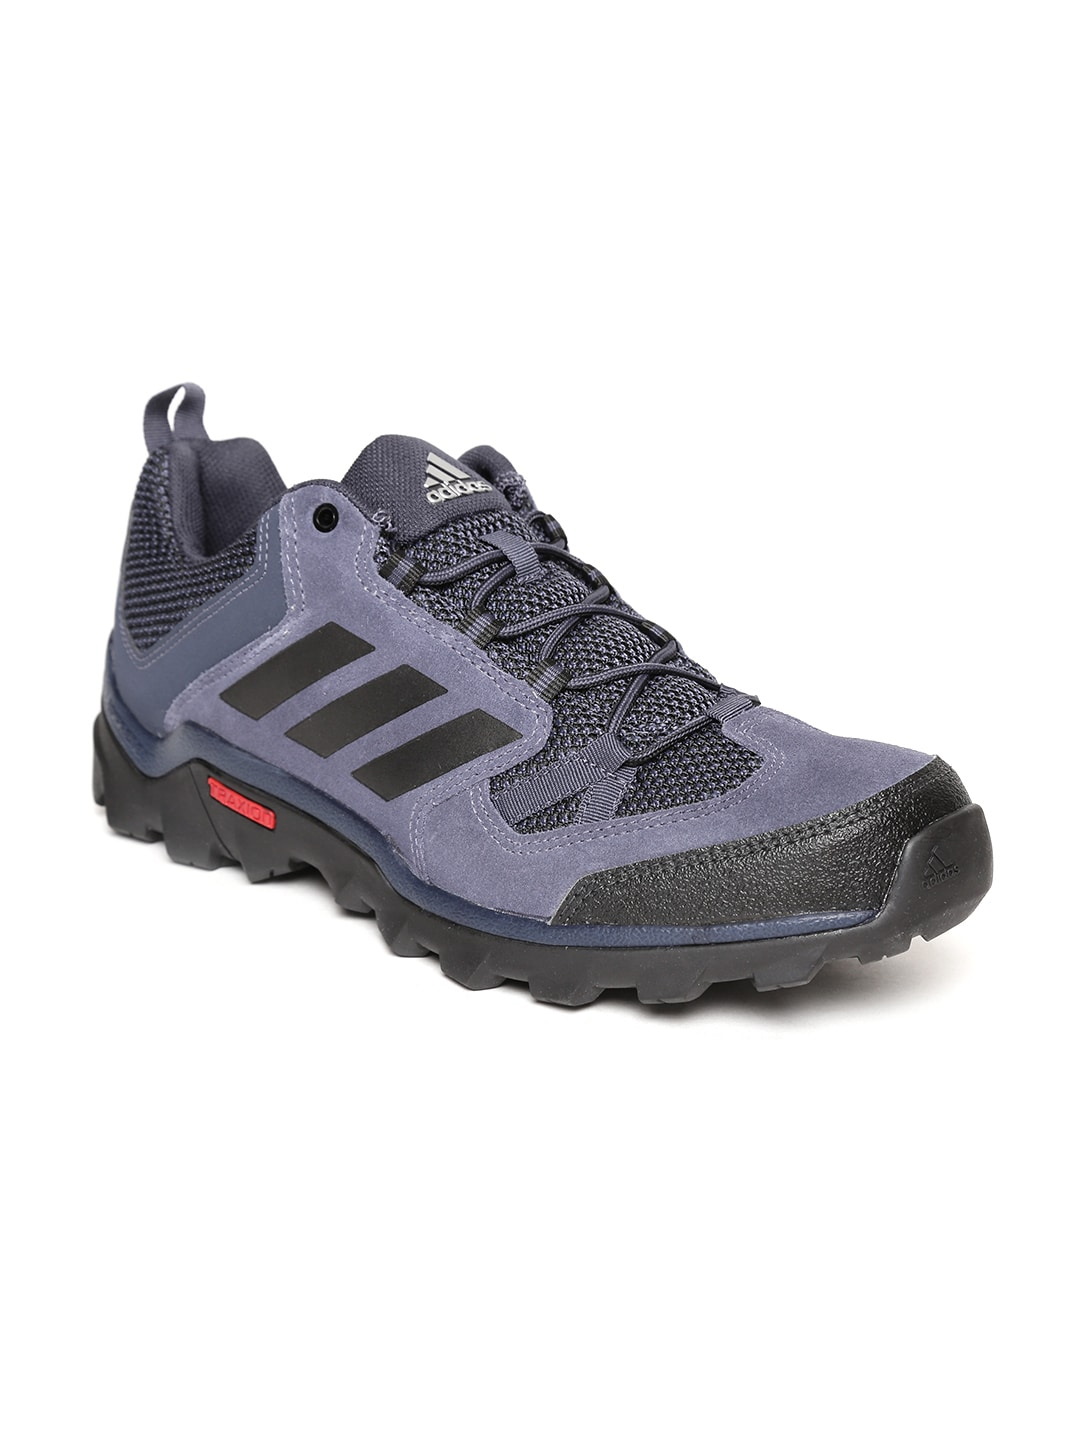 38ba1a24297 Adidas Cape Rock Ind Blue Outdoor Shoes for Men online in India at ...